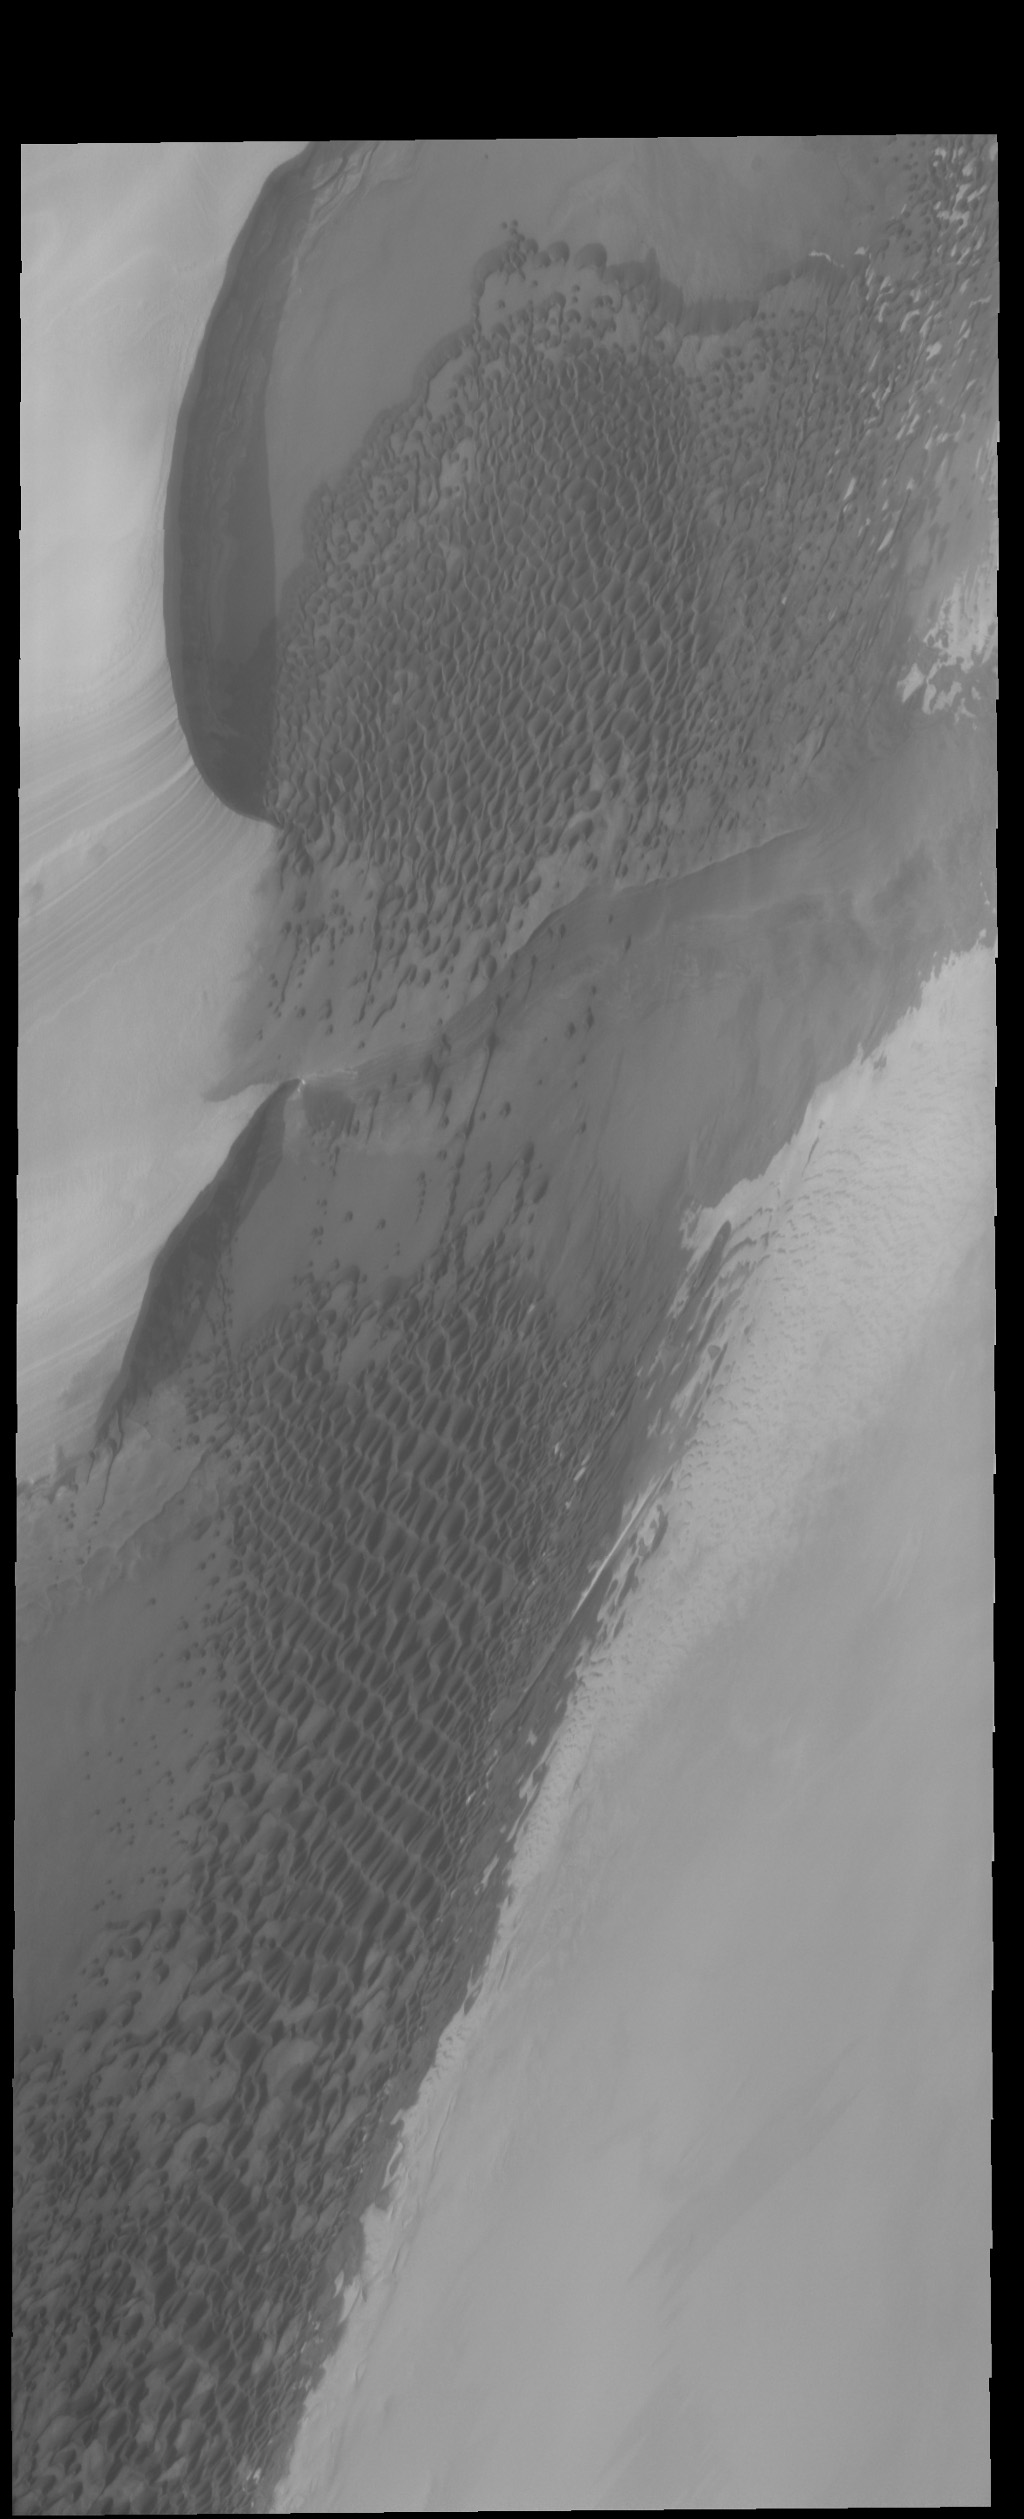 The dunes in this image captured by NASA's 2001 Mars Odyssey spacecraft are located right at the edge of the polar cap.